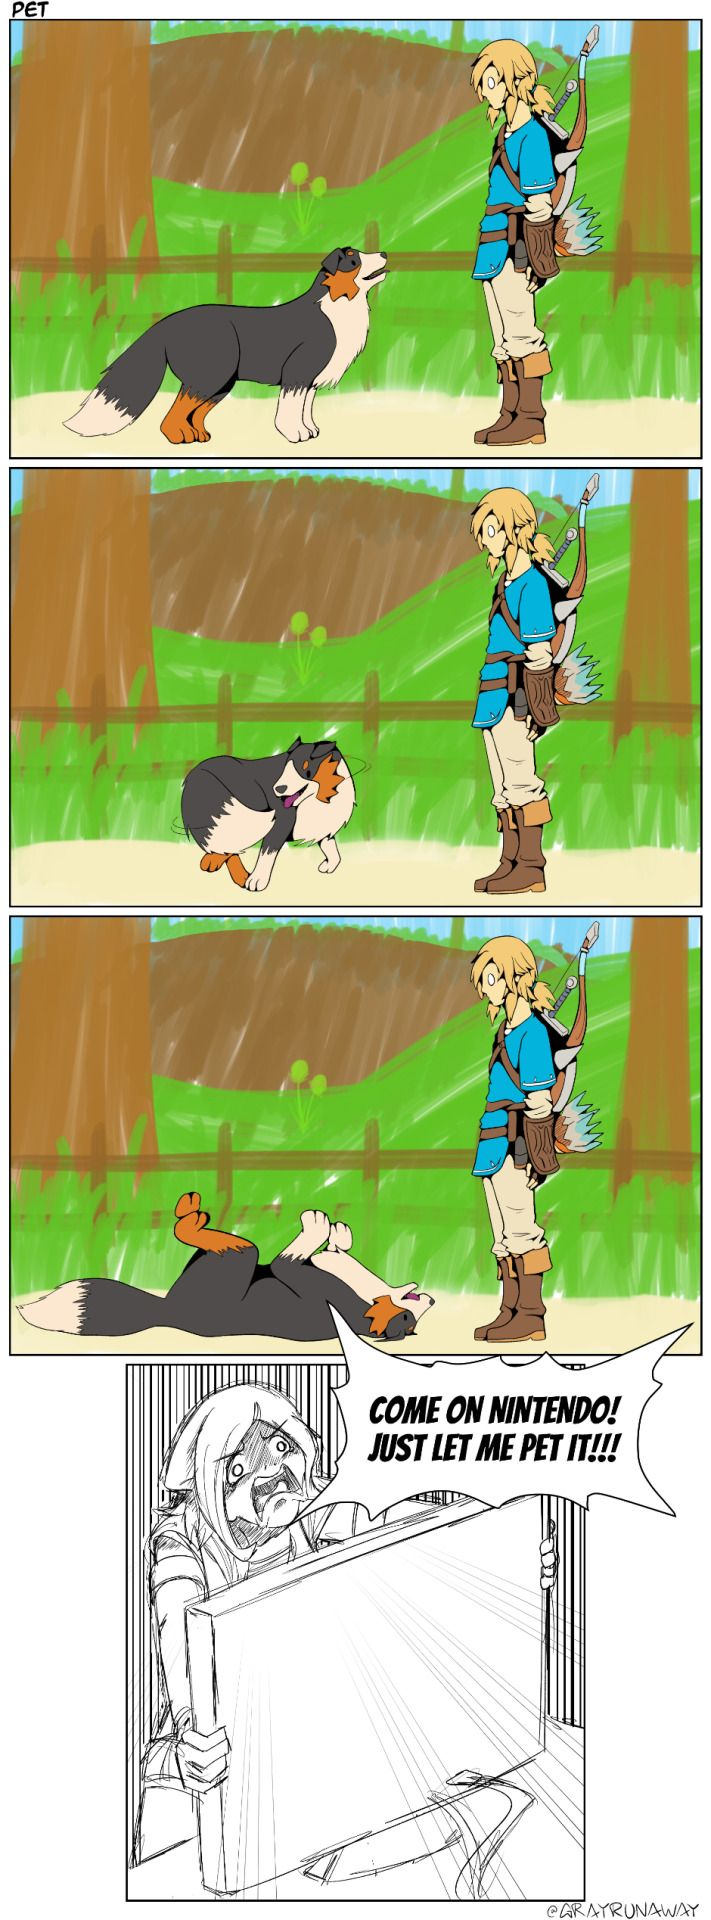 MY REACTION COMPLETELY, I WAS LIKE WHY CANT I BE LIKE TP LINK AND PICK IT UP